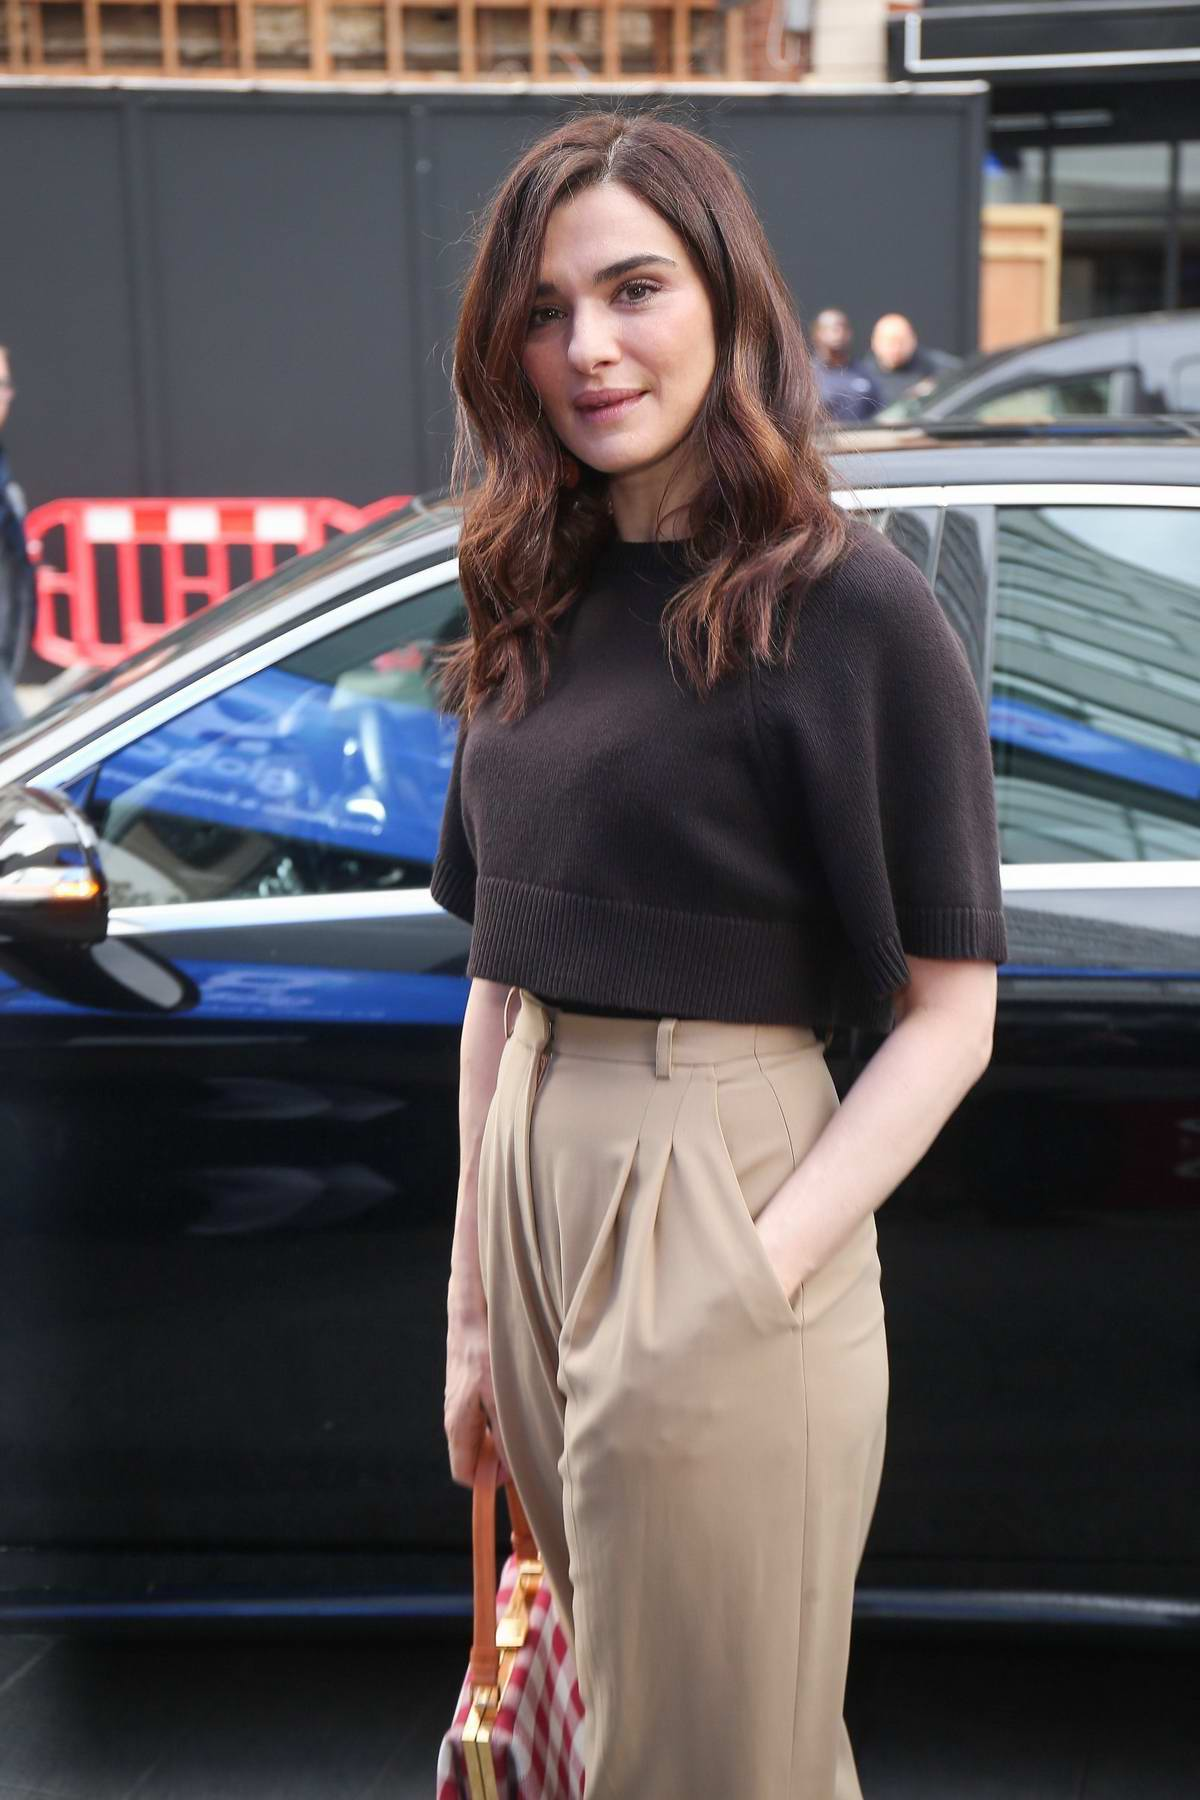 rachel weisz at aol build ldn after promoting her new film ... Alessandra Ambrosio